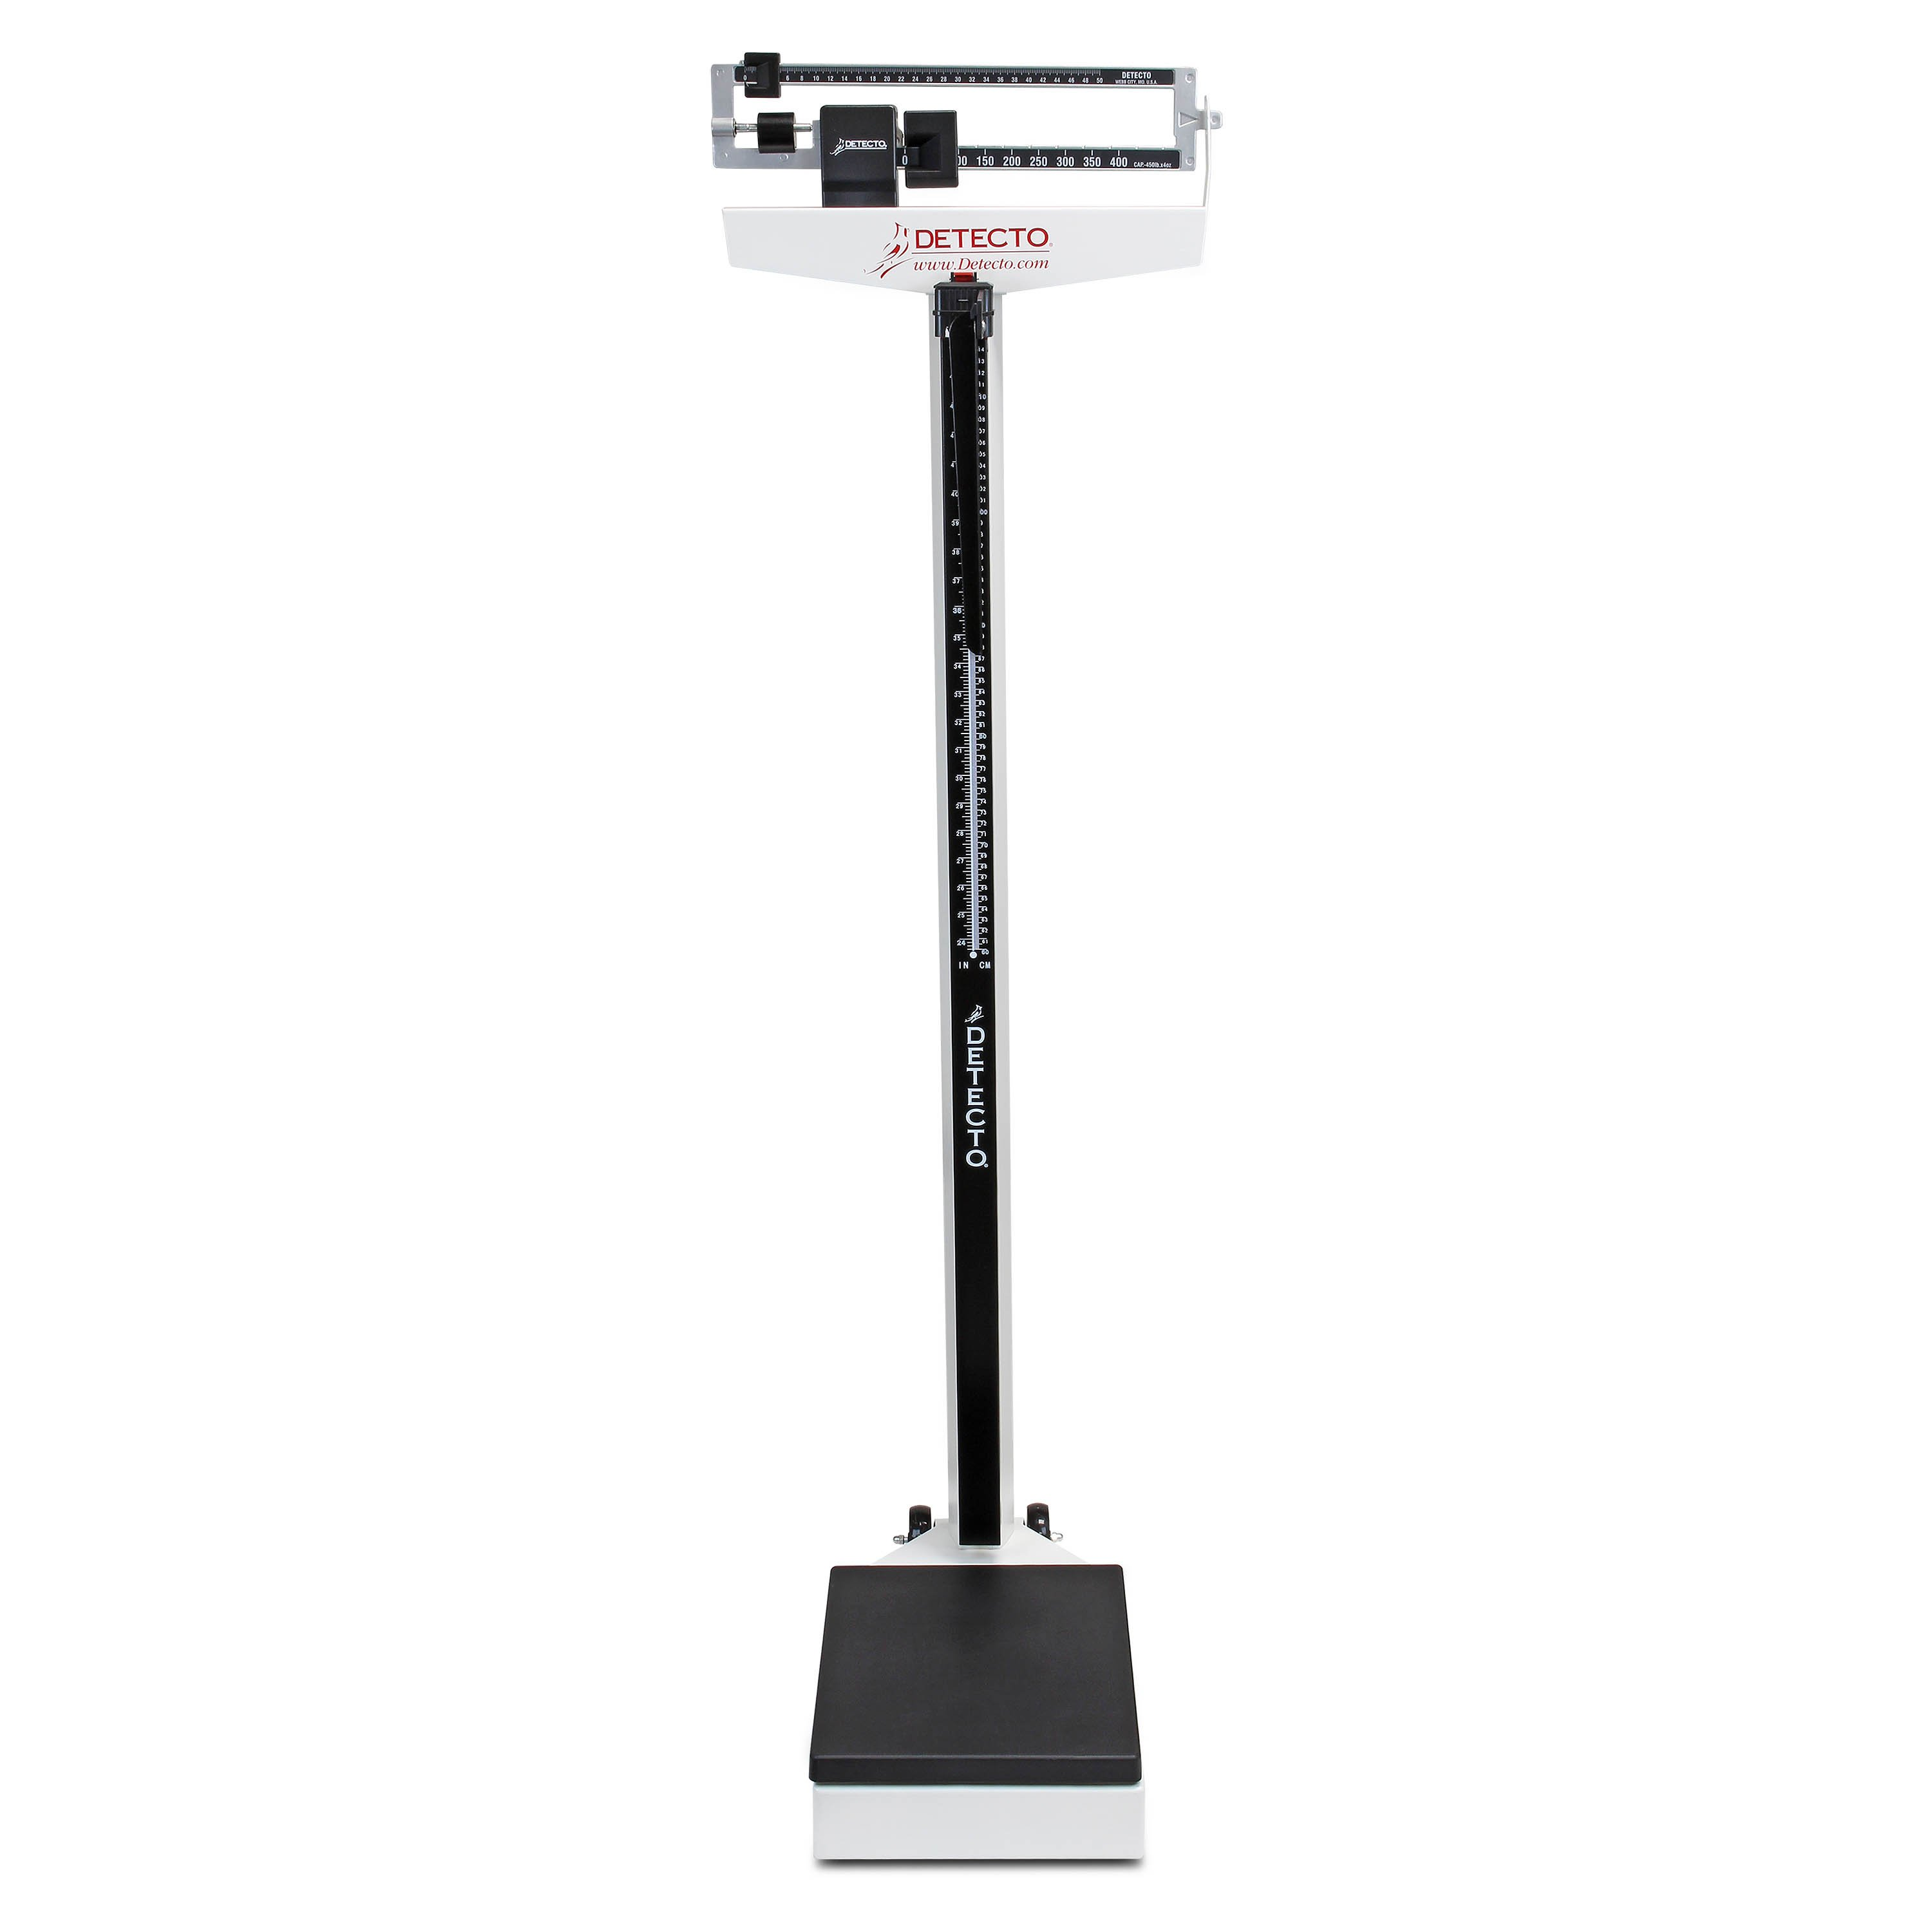 Mechanical Eye-Level Scale - White - Lb Display - Capacity 450 lb - With Height Rod and Wheels